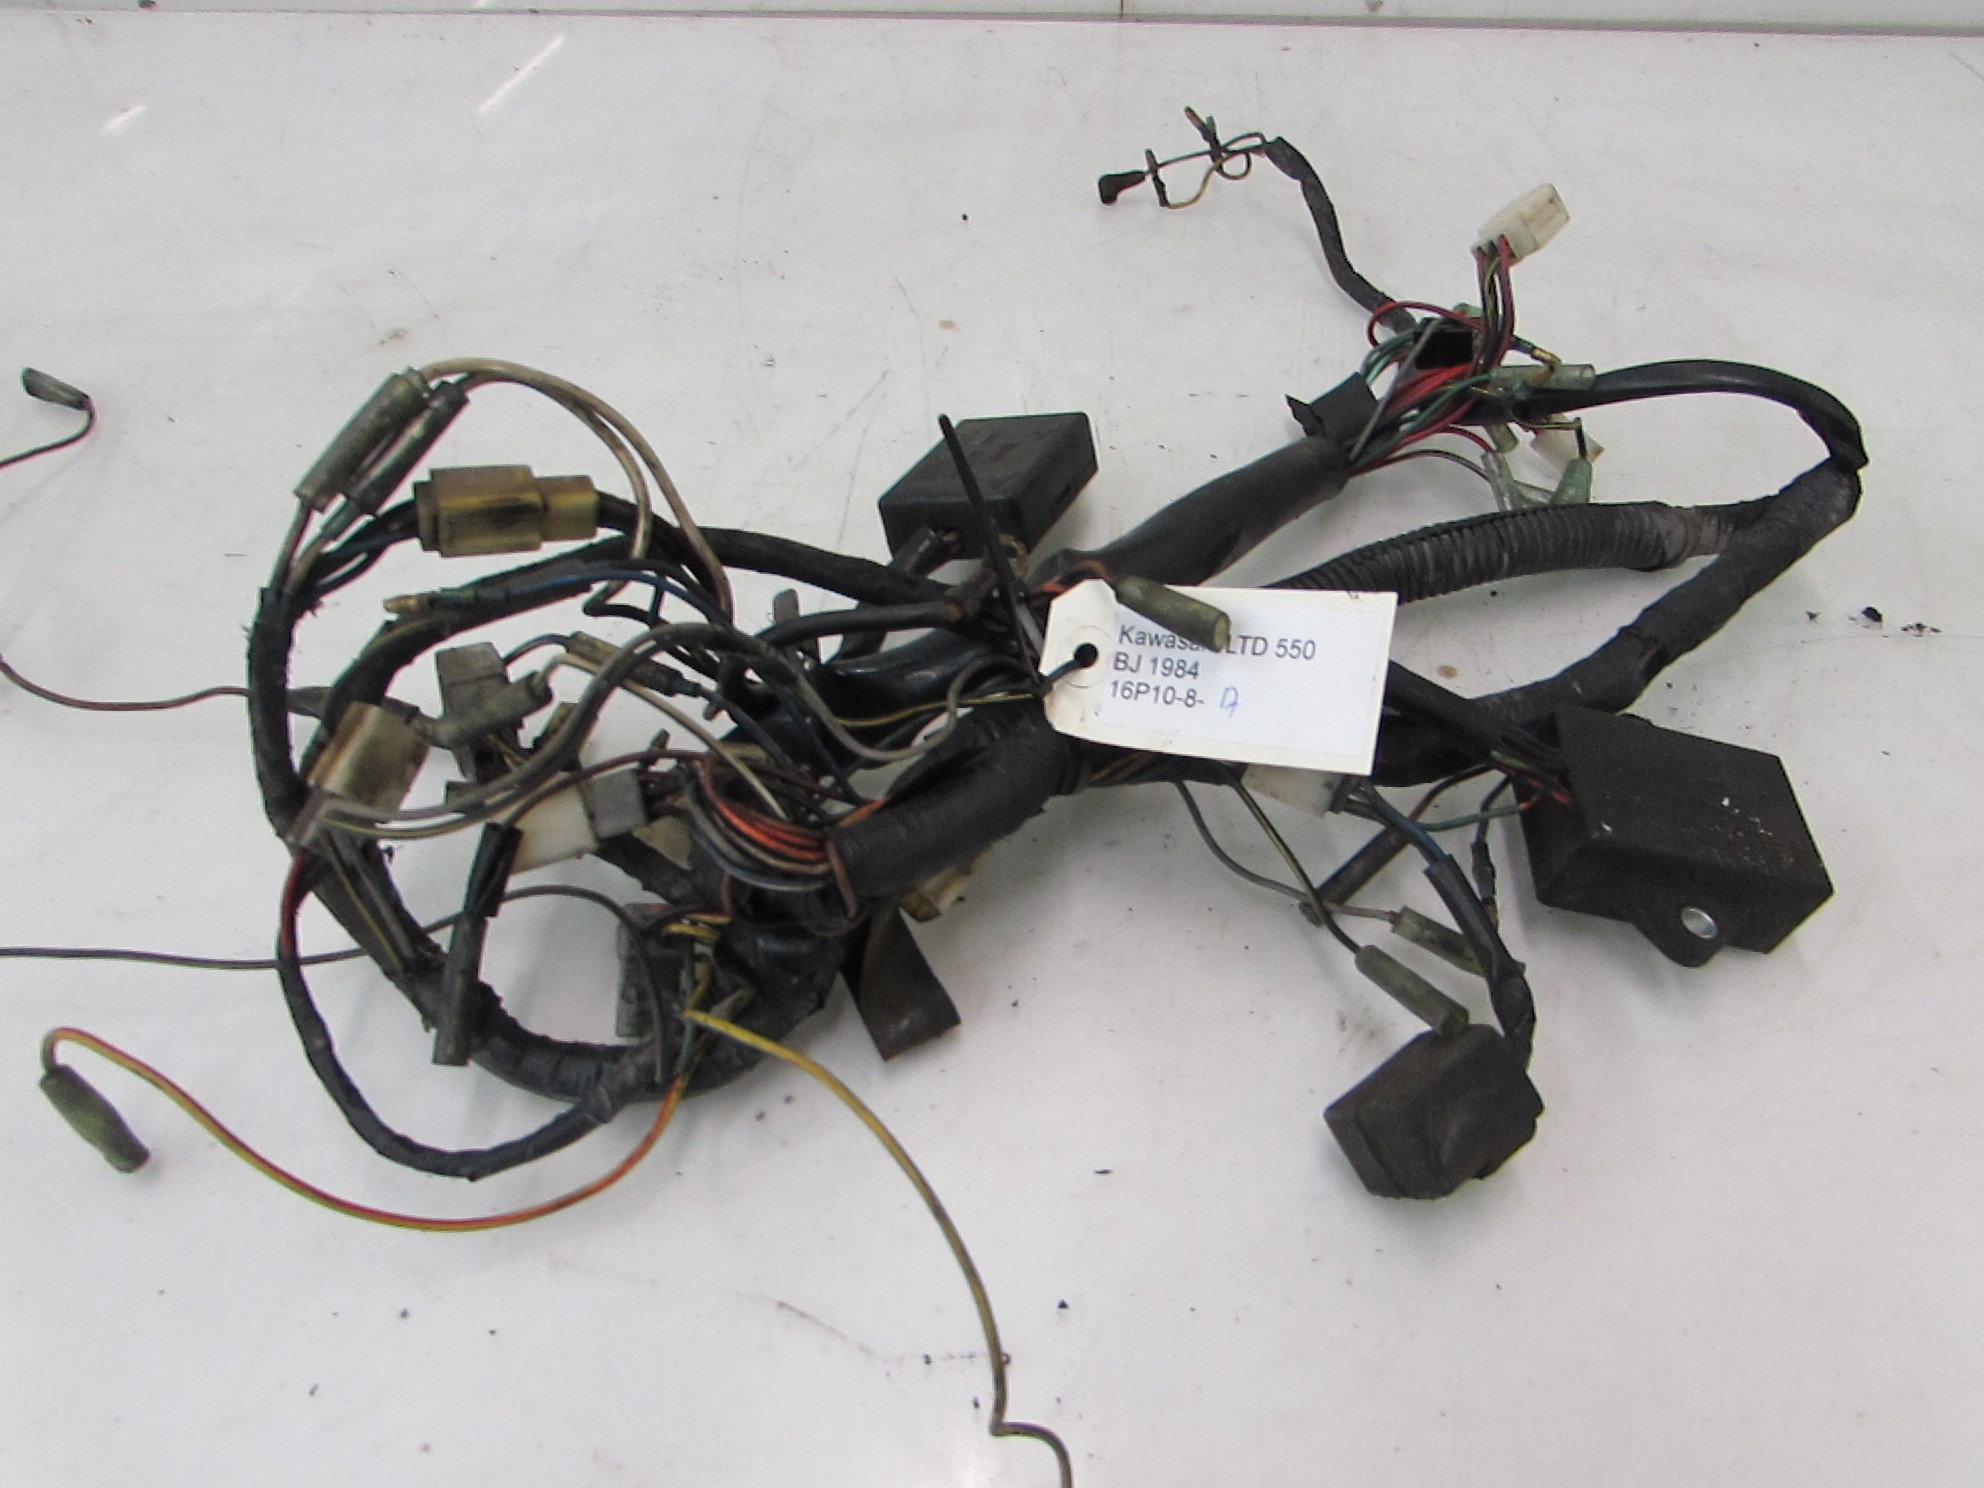 Wire Harness Kawasaki Ltd 440 1970 2012 201229889 Motorparts Wiring Machines India